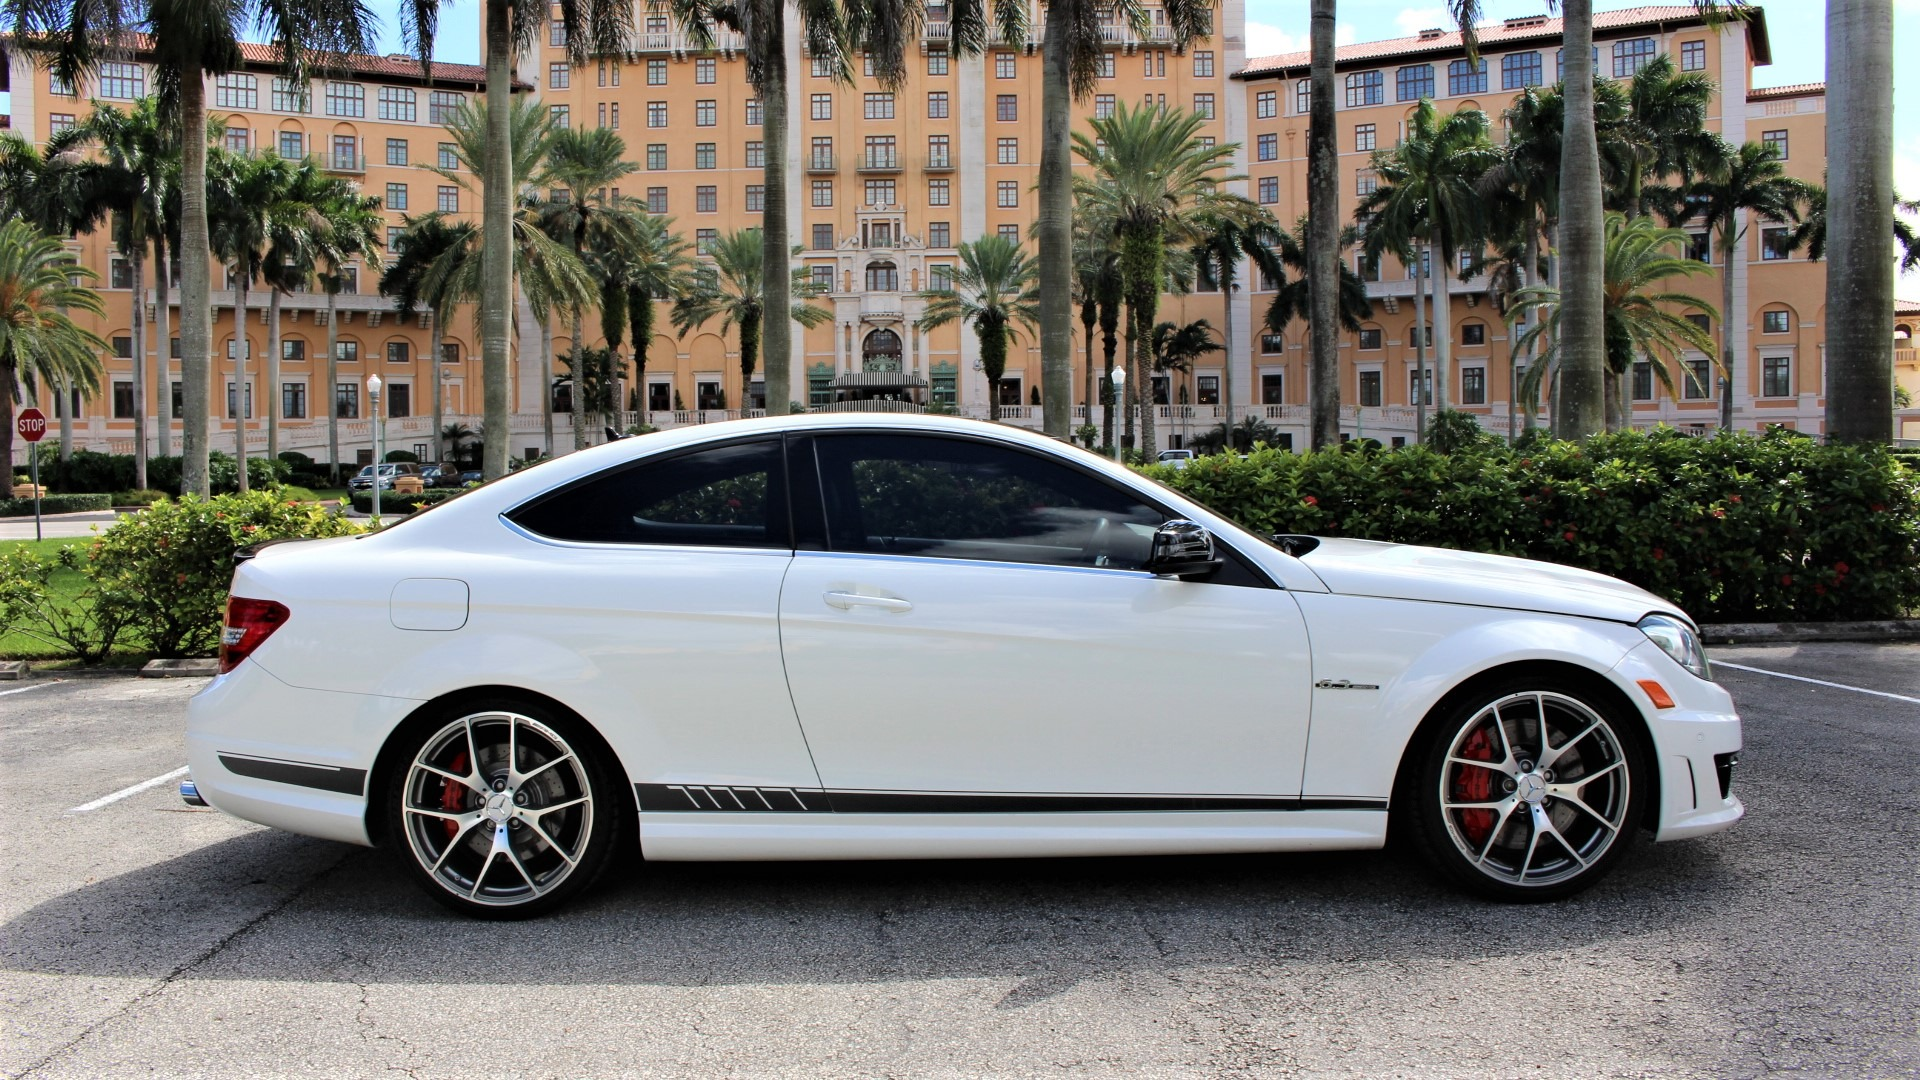 Used 2015 Mercedes-Benz C-Class C 63 AMG 507 Edition for sale $52,850 at The Gables Sports Cars in Miami FL 33146 1